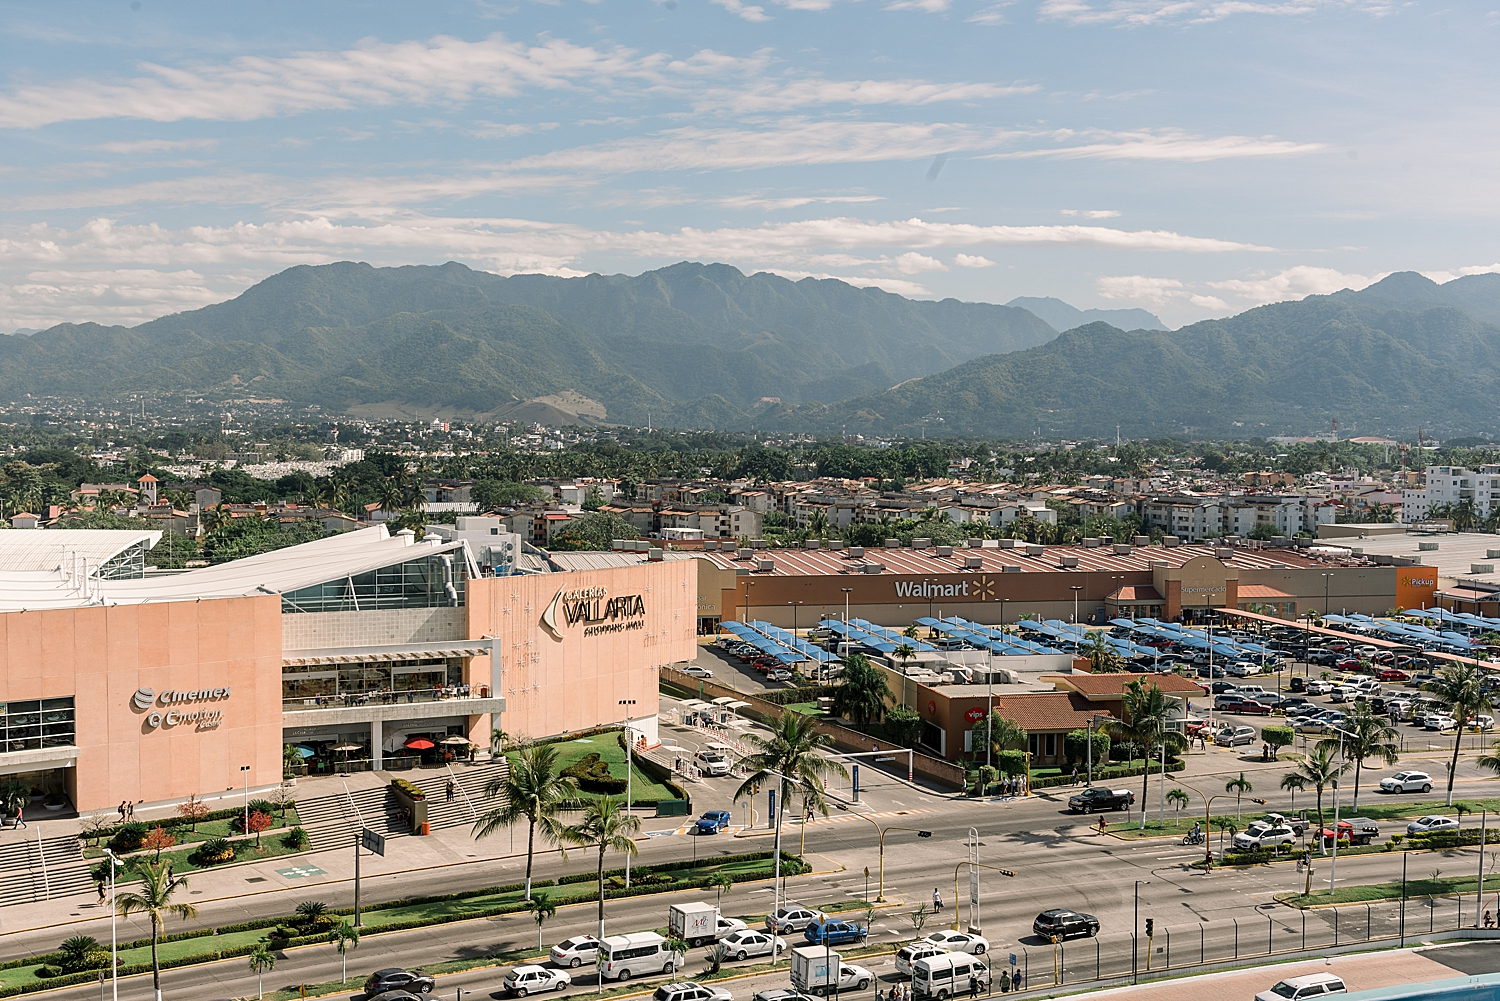 View from the Carnival Splendor of Wal-Mart and Puerto Vallarta Mall. Photo by Jade Min Photography.